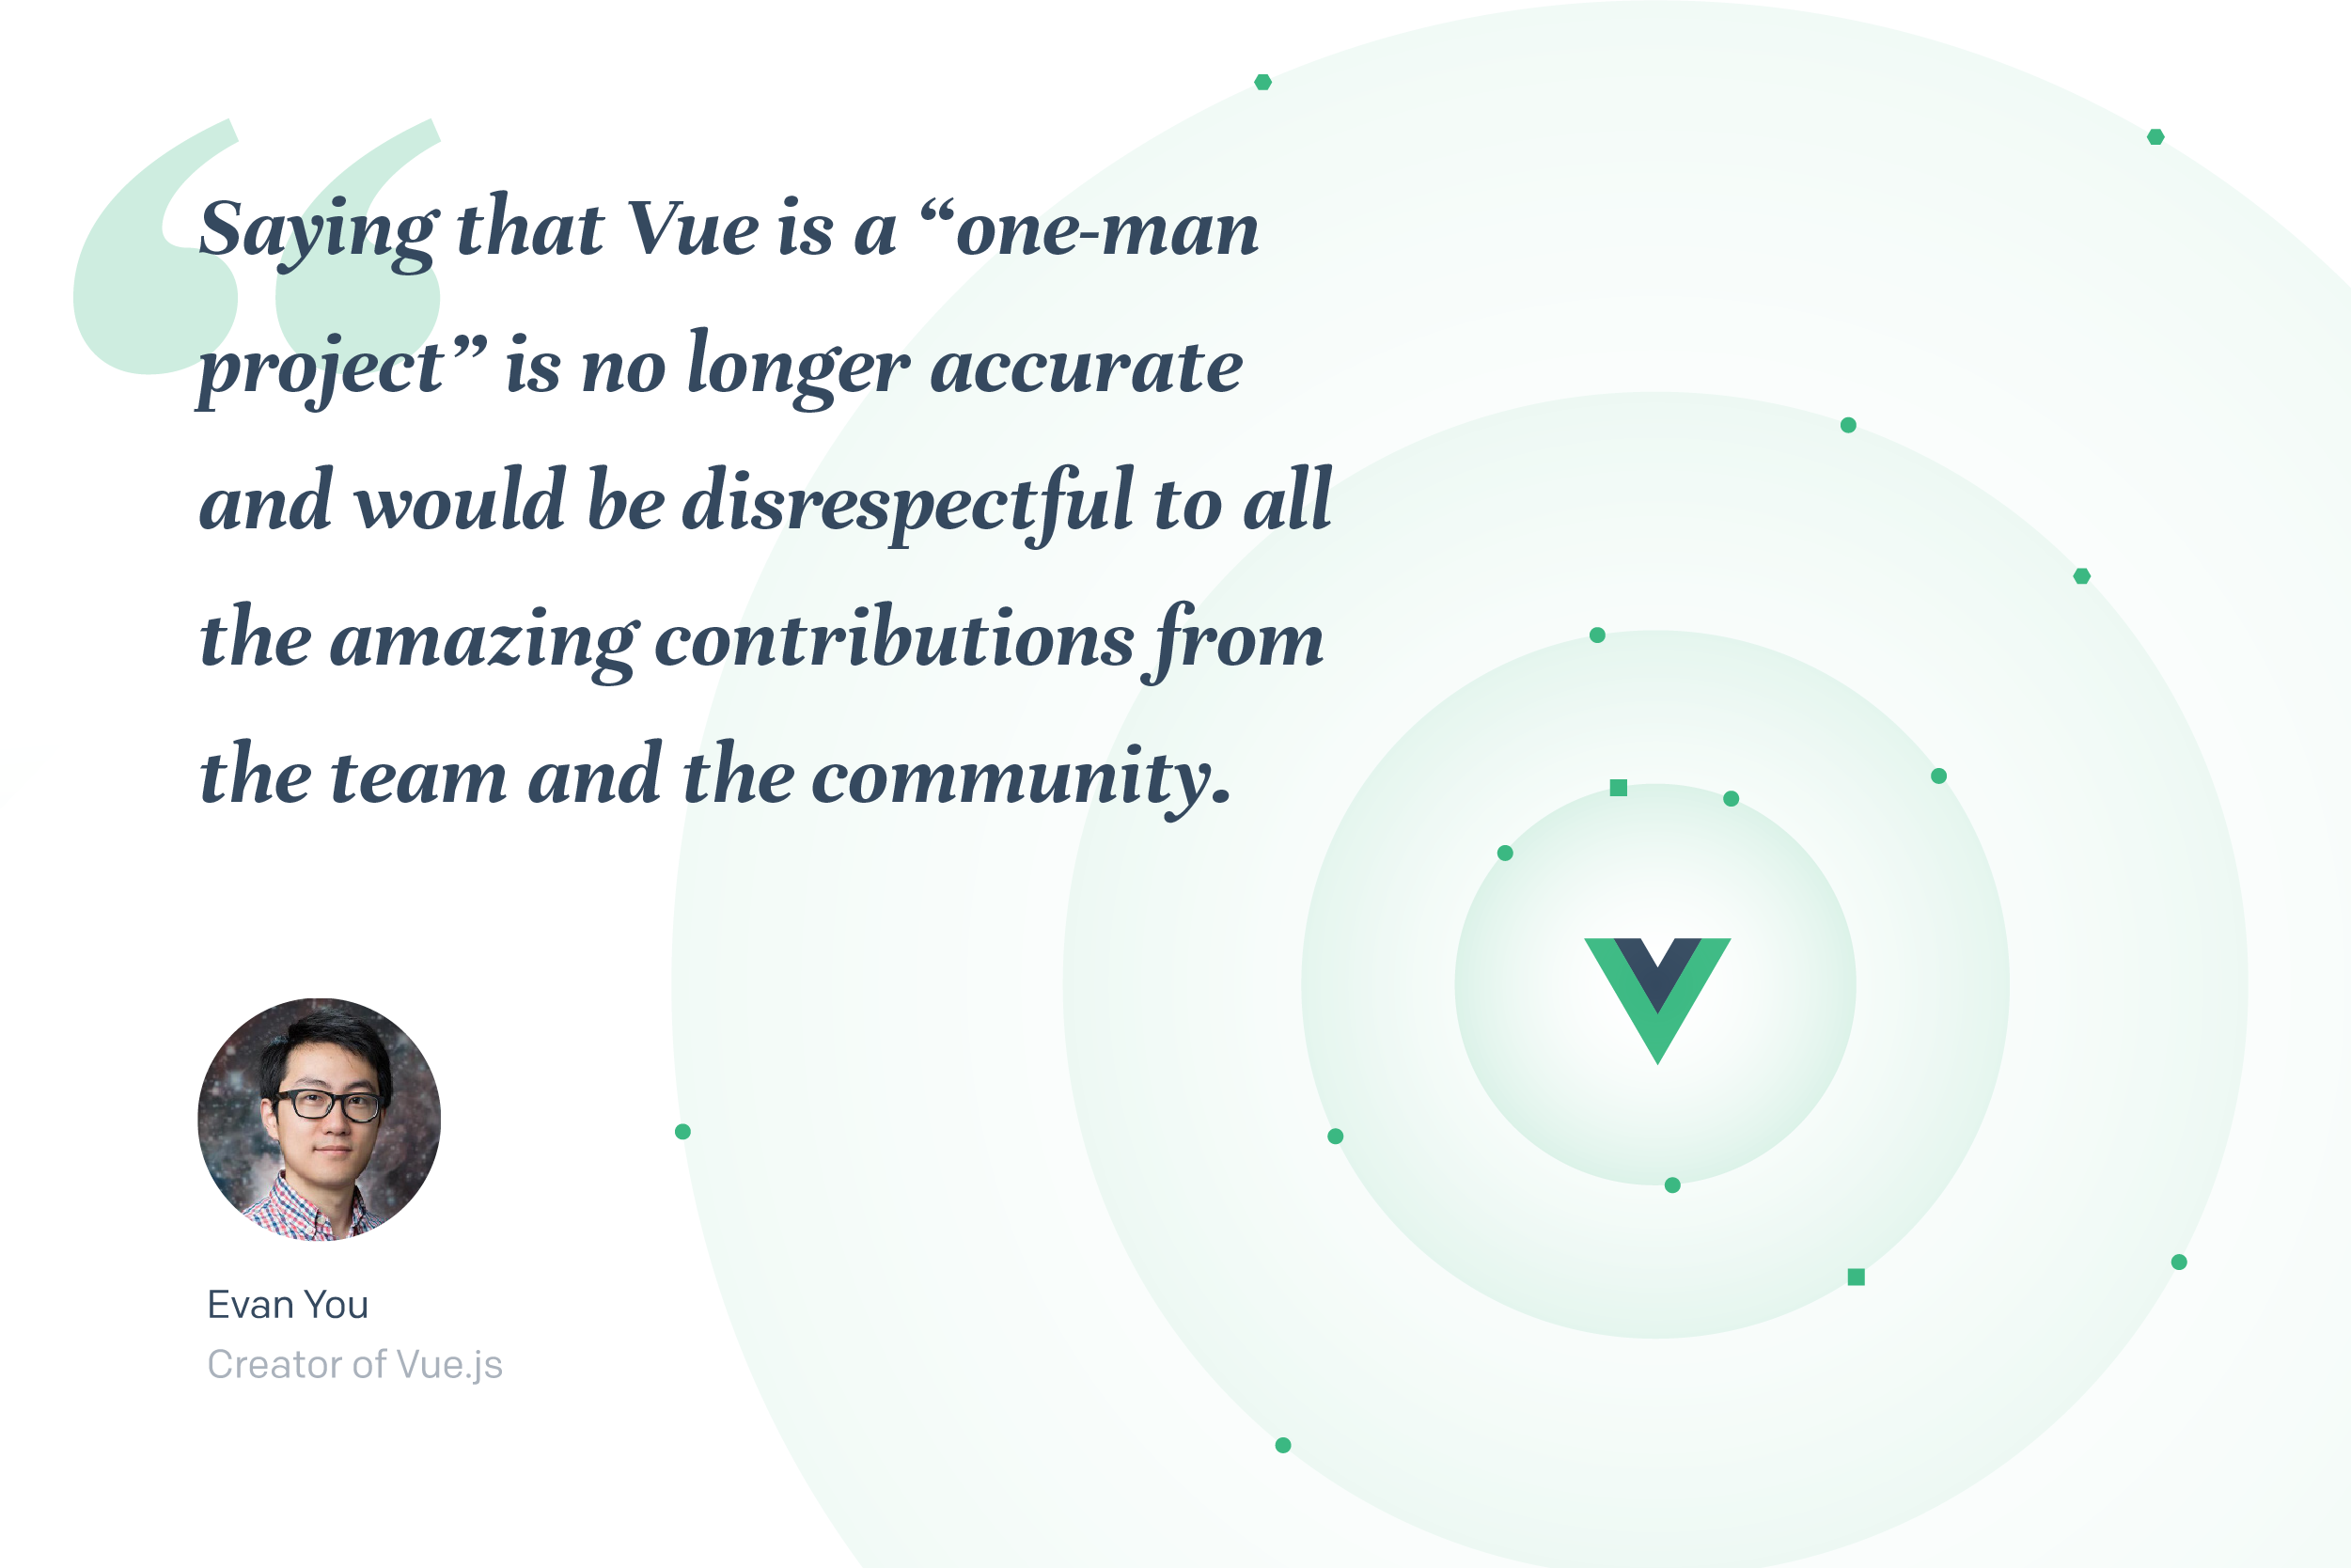 Evan You quote on Vue.js